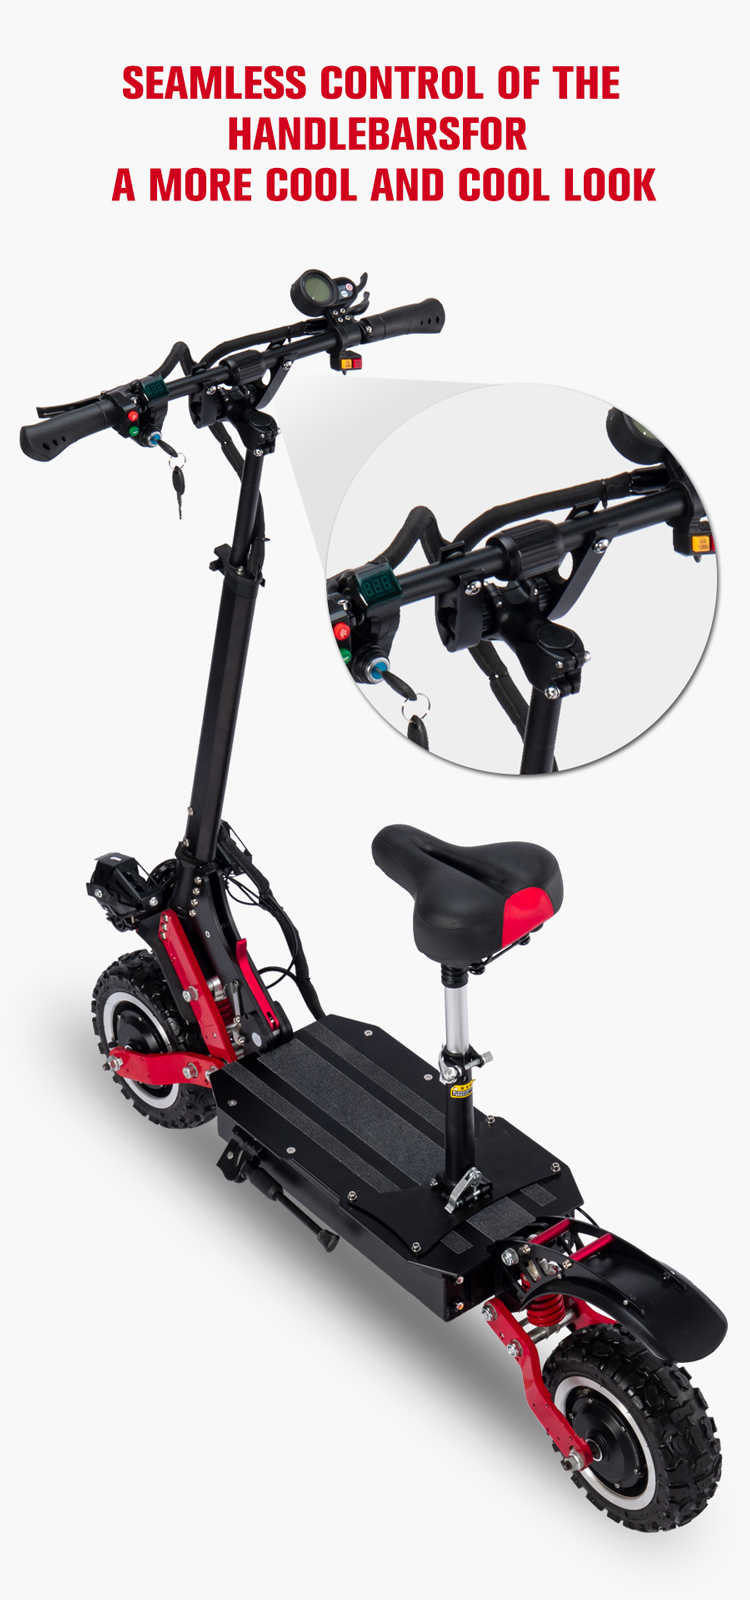 okidas-t4-5600w-dual-motor-scooter-electric-all-aluminum-alloy-kick-scooter-00-7-.jpg